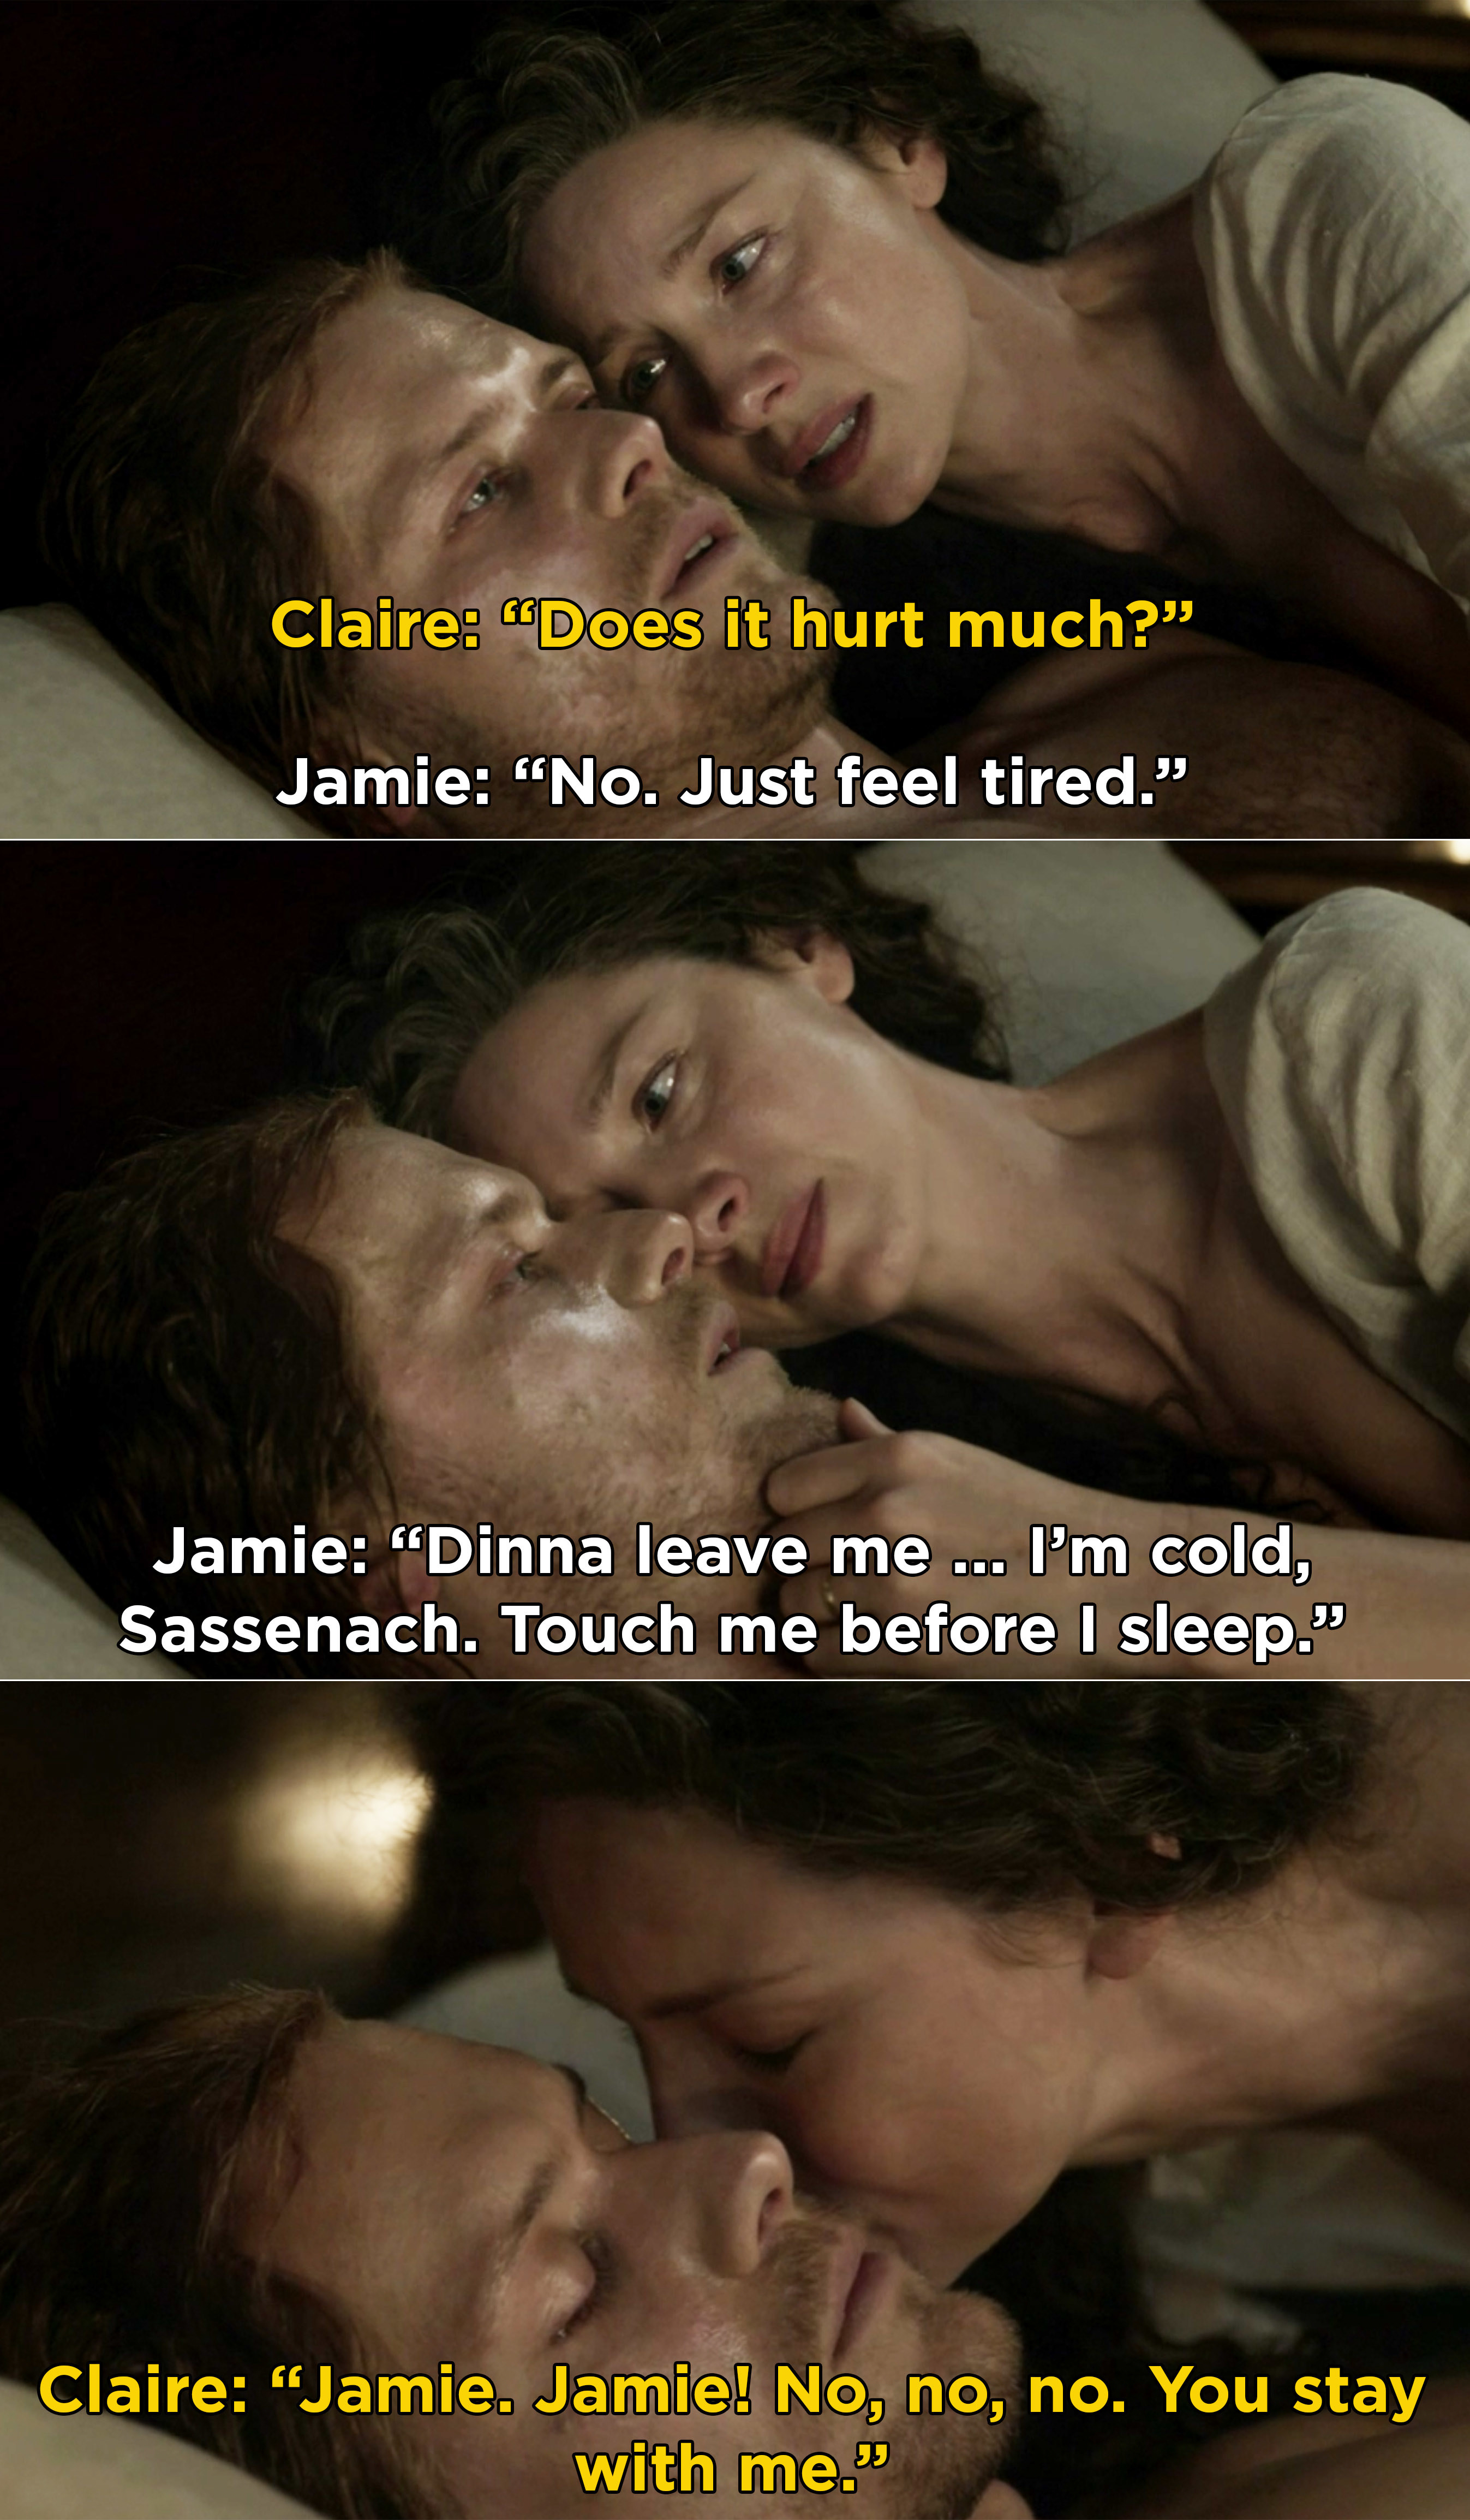 Claire sobbing and telling Jamie to stay with her